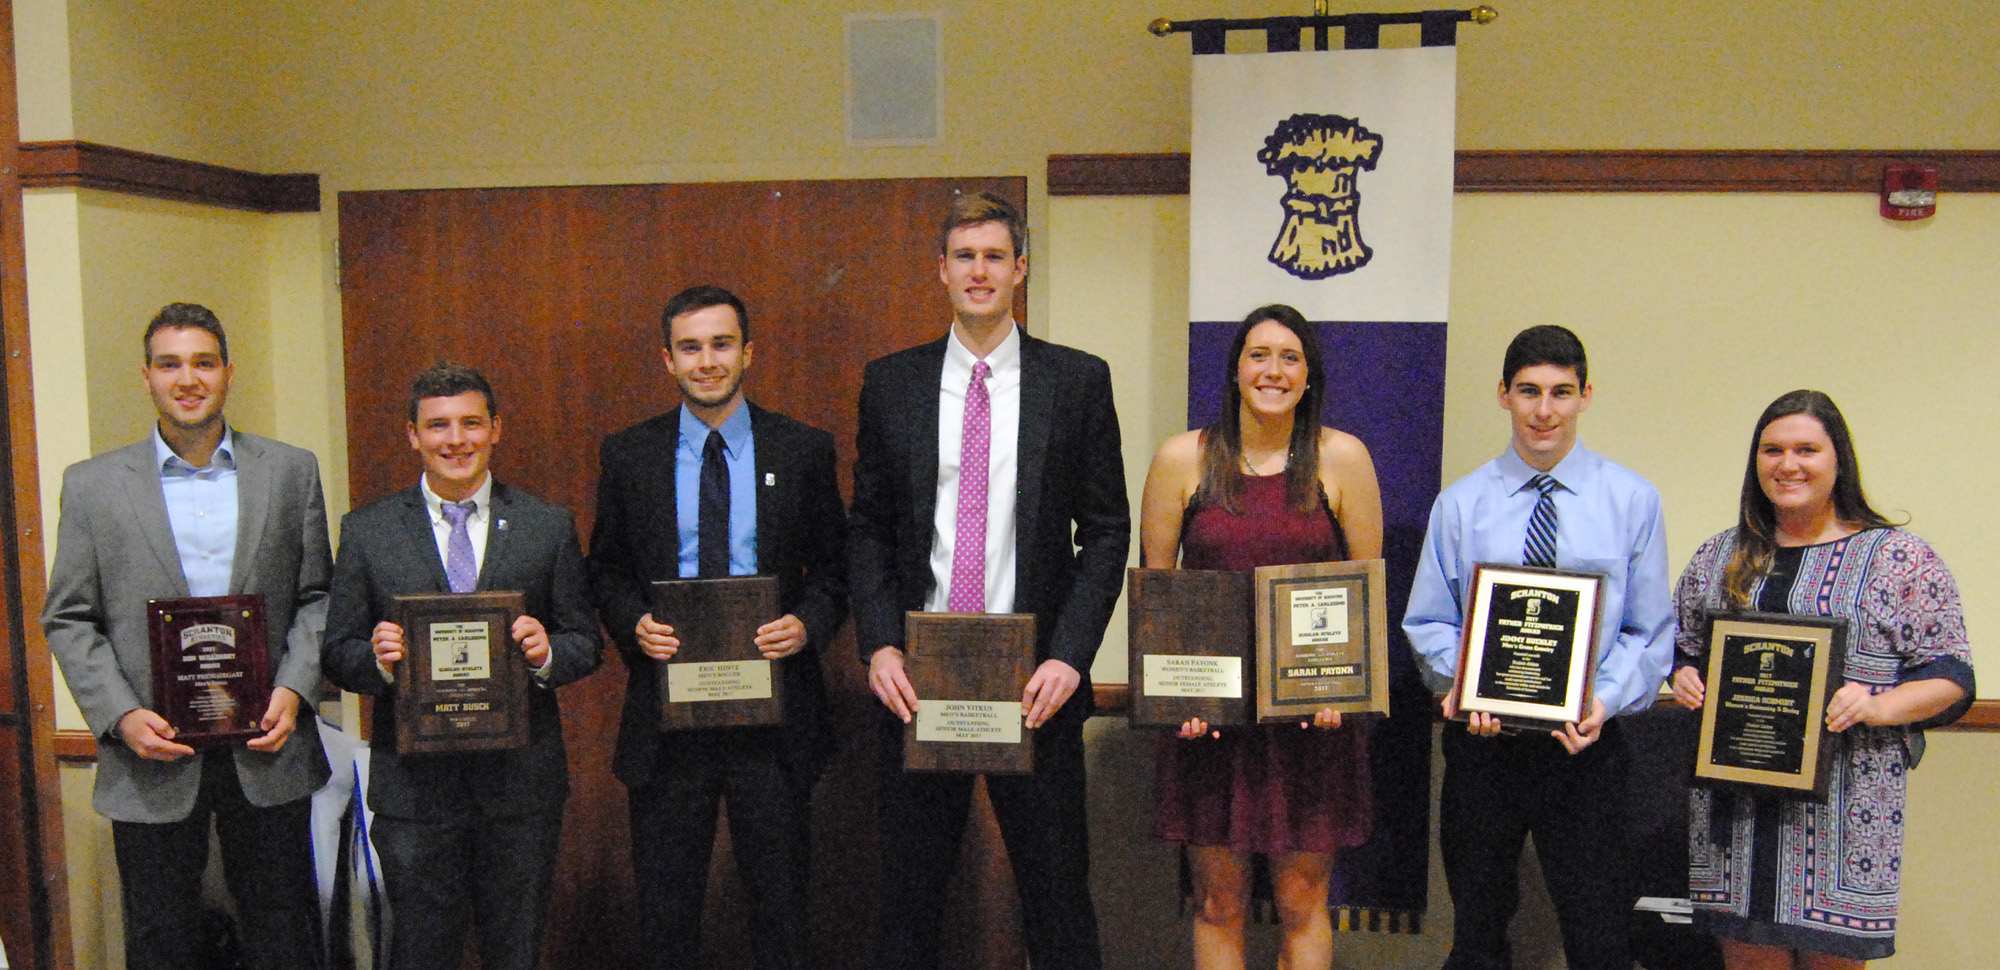 The special award winners at the 2017 Senior Student-Athlete luncheon are, from left, Matt Prendergast of men's tennis (Willensky Award), Matthew Busch of men's soccer (Carlesimo Award), Eric Hintz of men's soccer (O'Hara Award), John Vitkus of men's basketball (O'Hara Award), Sarah Payonk of women's basketball (O'Hara and Carlesimo awards), Jimmy Buckley of men's cross country (Fitzpatrick Award) and Jessica Schmidt of women's swimming & diving (Fitzpatrick Award).